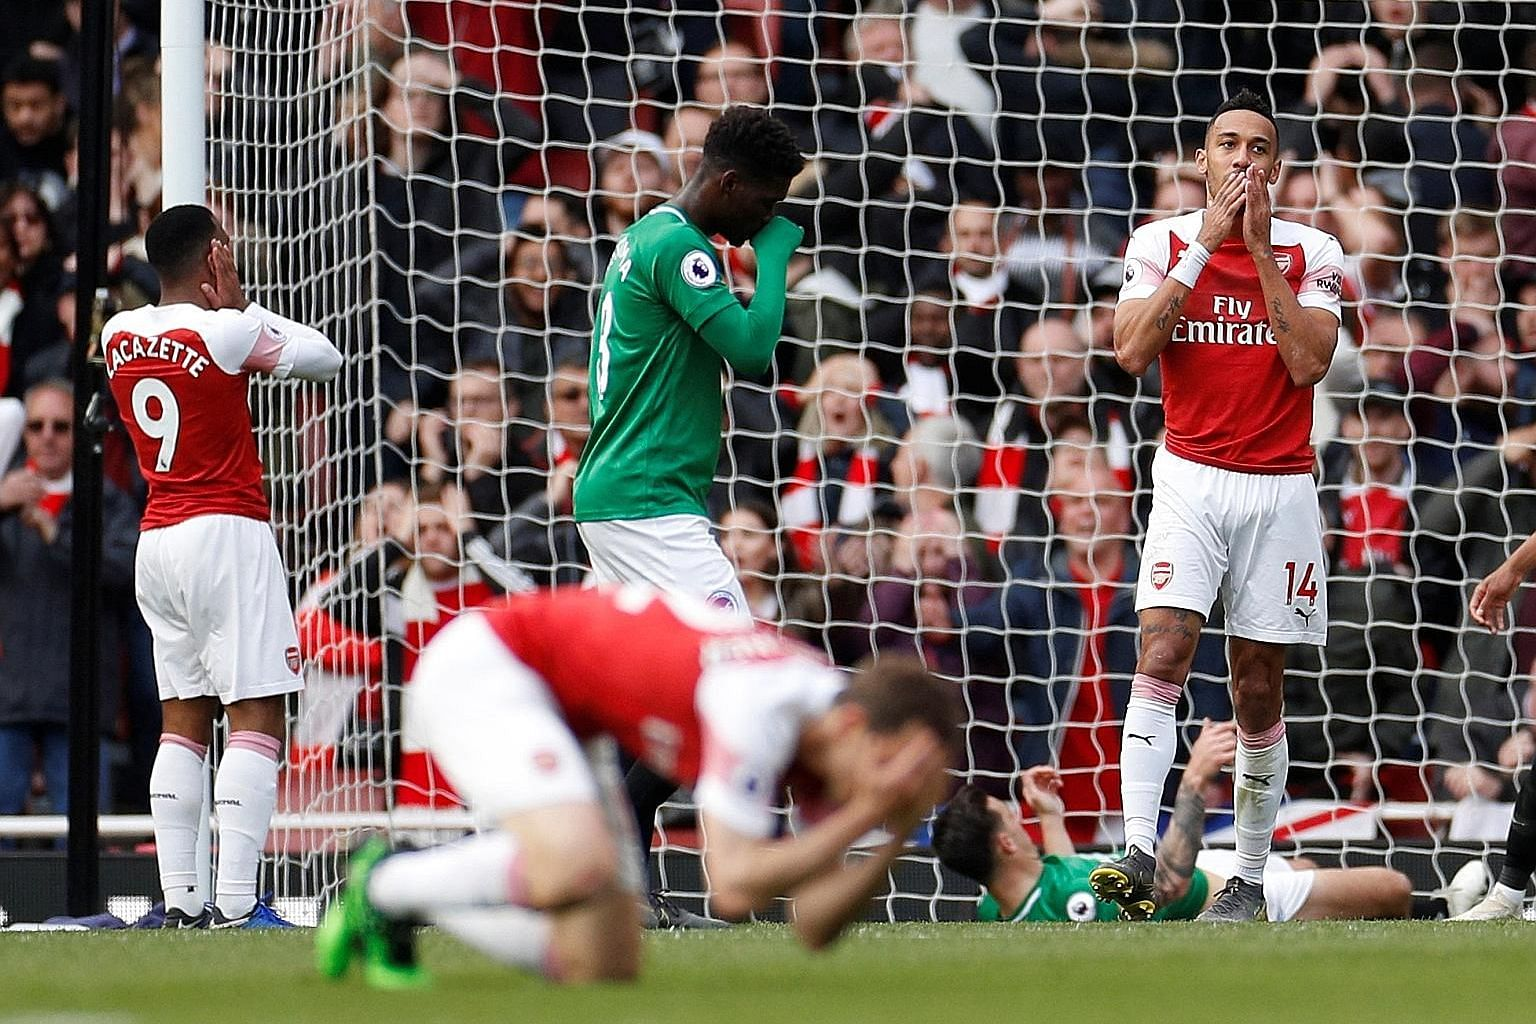 Arsenal's Pierre-Emerick Aubameyang (right) and teammates in disbelief after his miss during the Premier League game against Brighton at the Emirates on Sunday. The teams drew 1-1. PHOTO: REUTERS